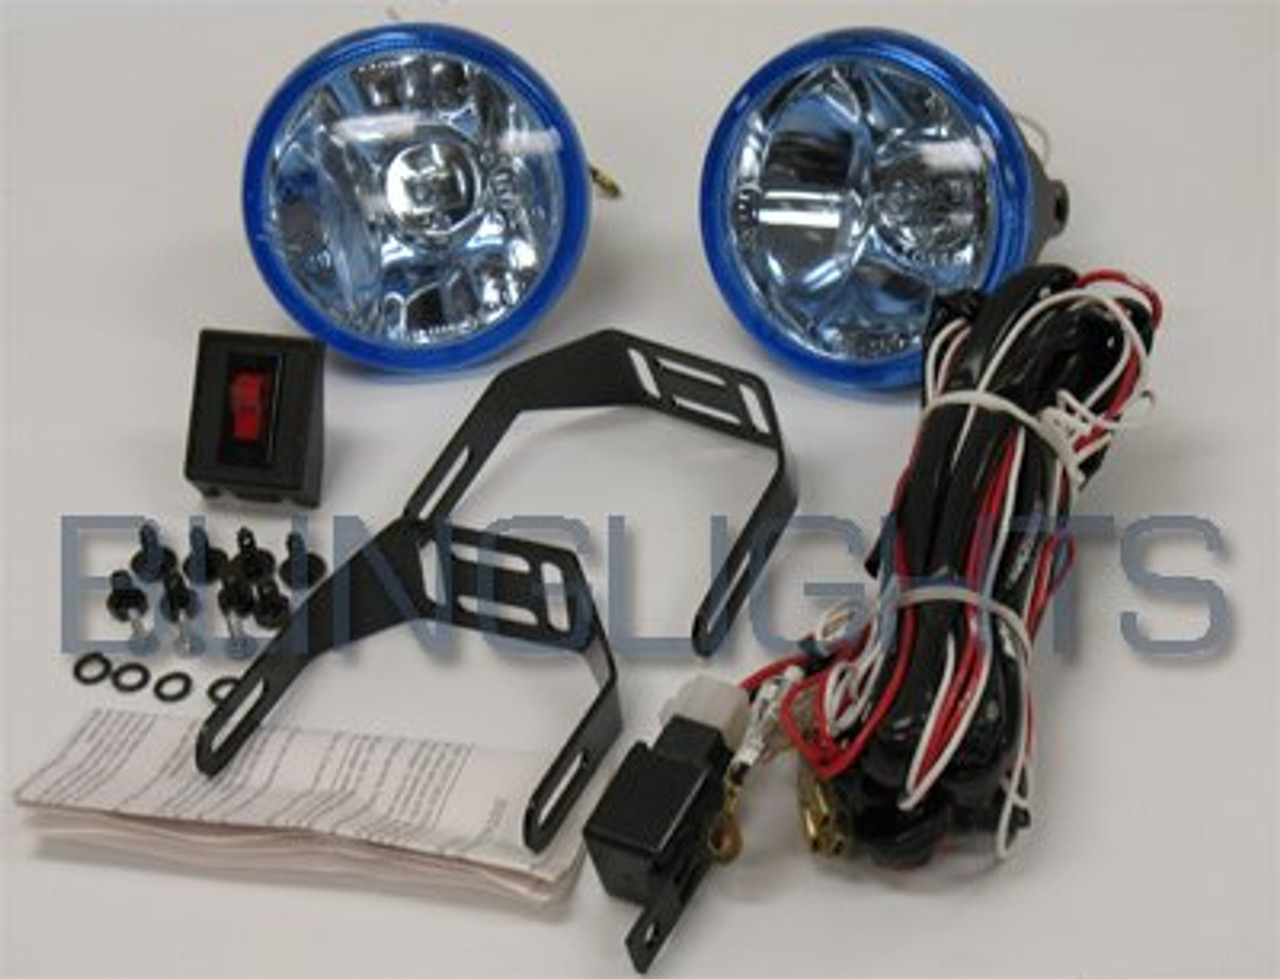 1998 1999 2000 2001 2002 2003 2004 2005 Pontiac Montana Xenon Fog Lights Driving Lamps kit sv6